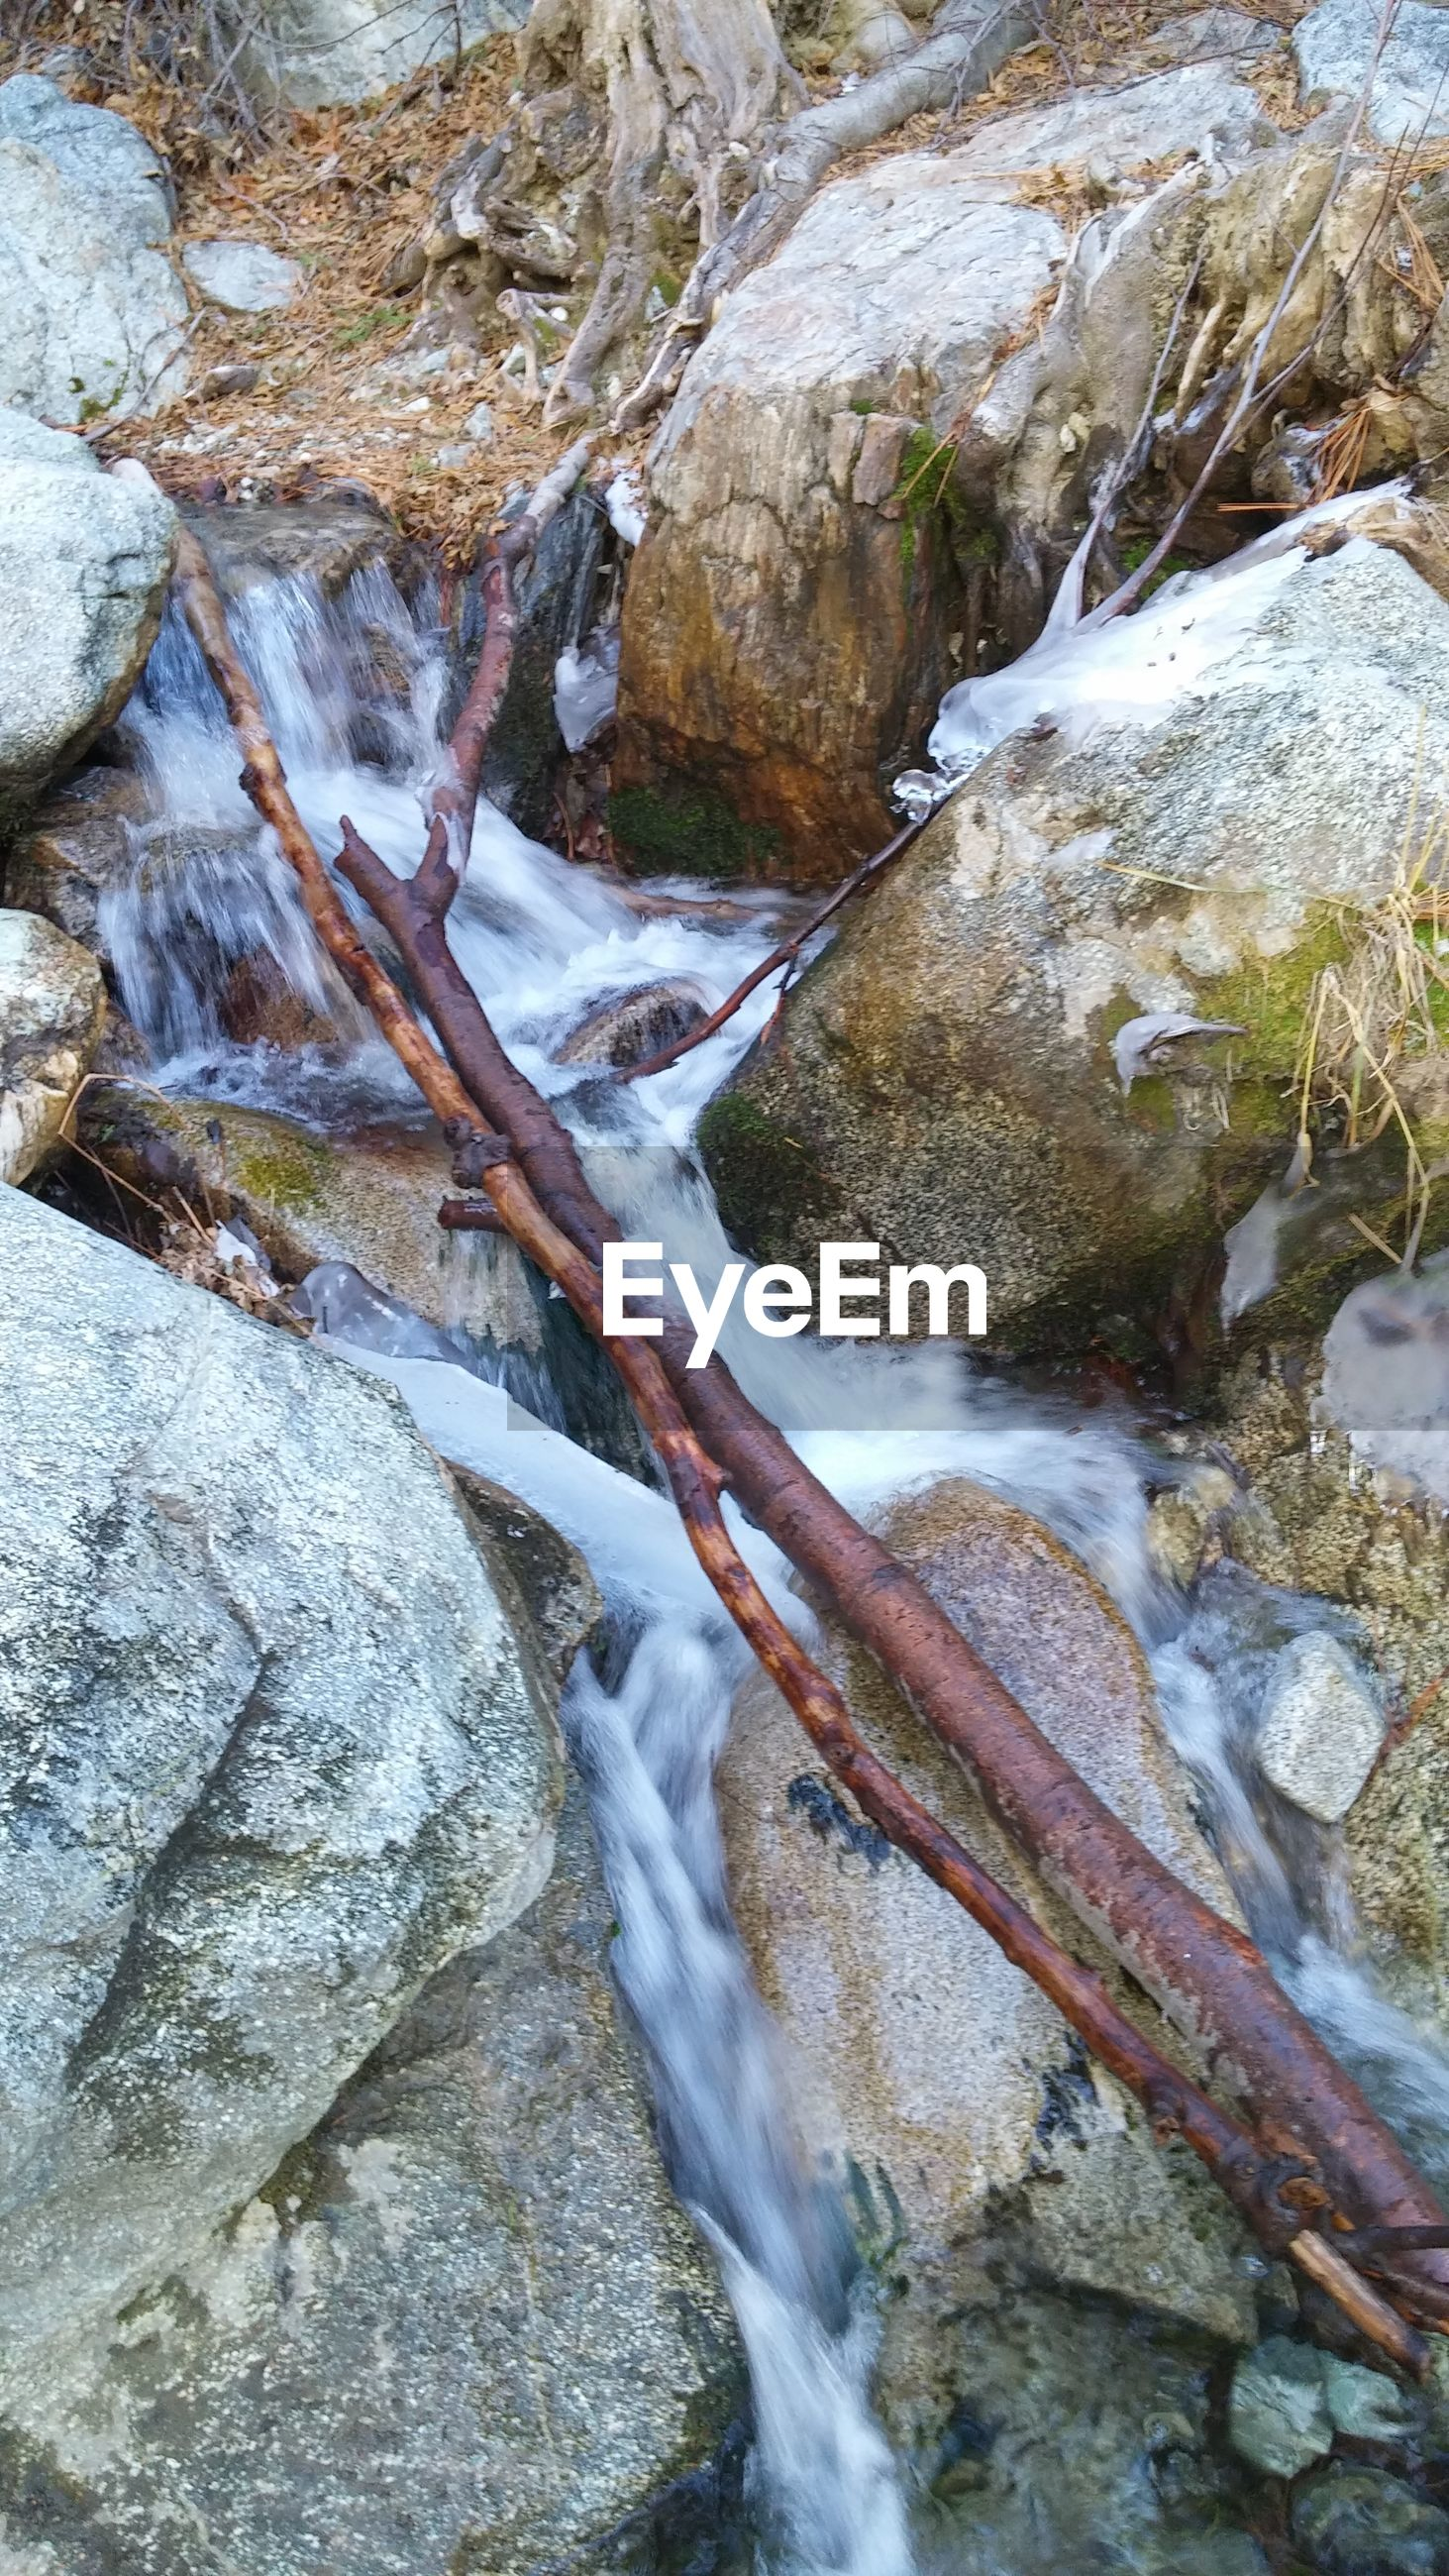 water, flowing water, waterfall, rock - object, flowing, motion, nature, stream, beauty in nature, long exposure, river, surf, high angle view, day, outdoors, rock formation, rock, moss, forest, scenics